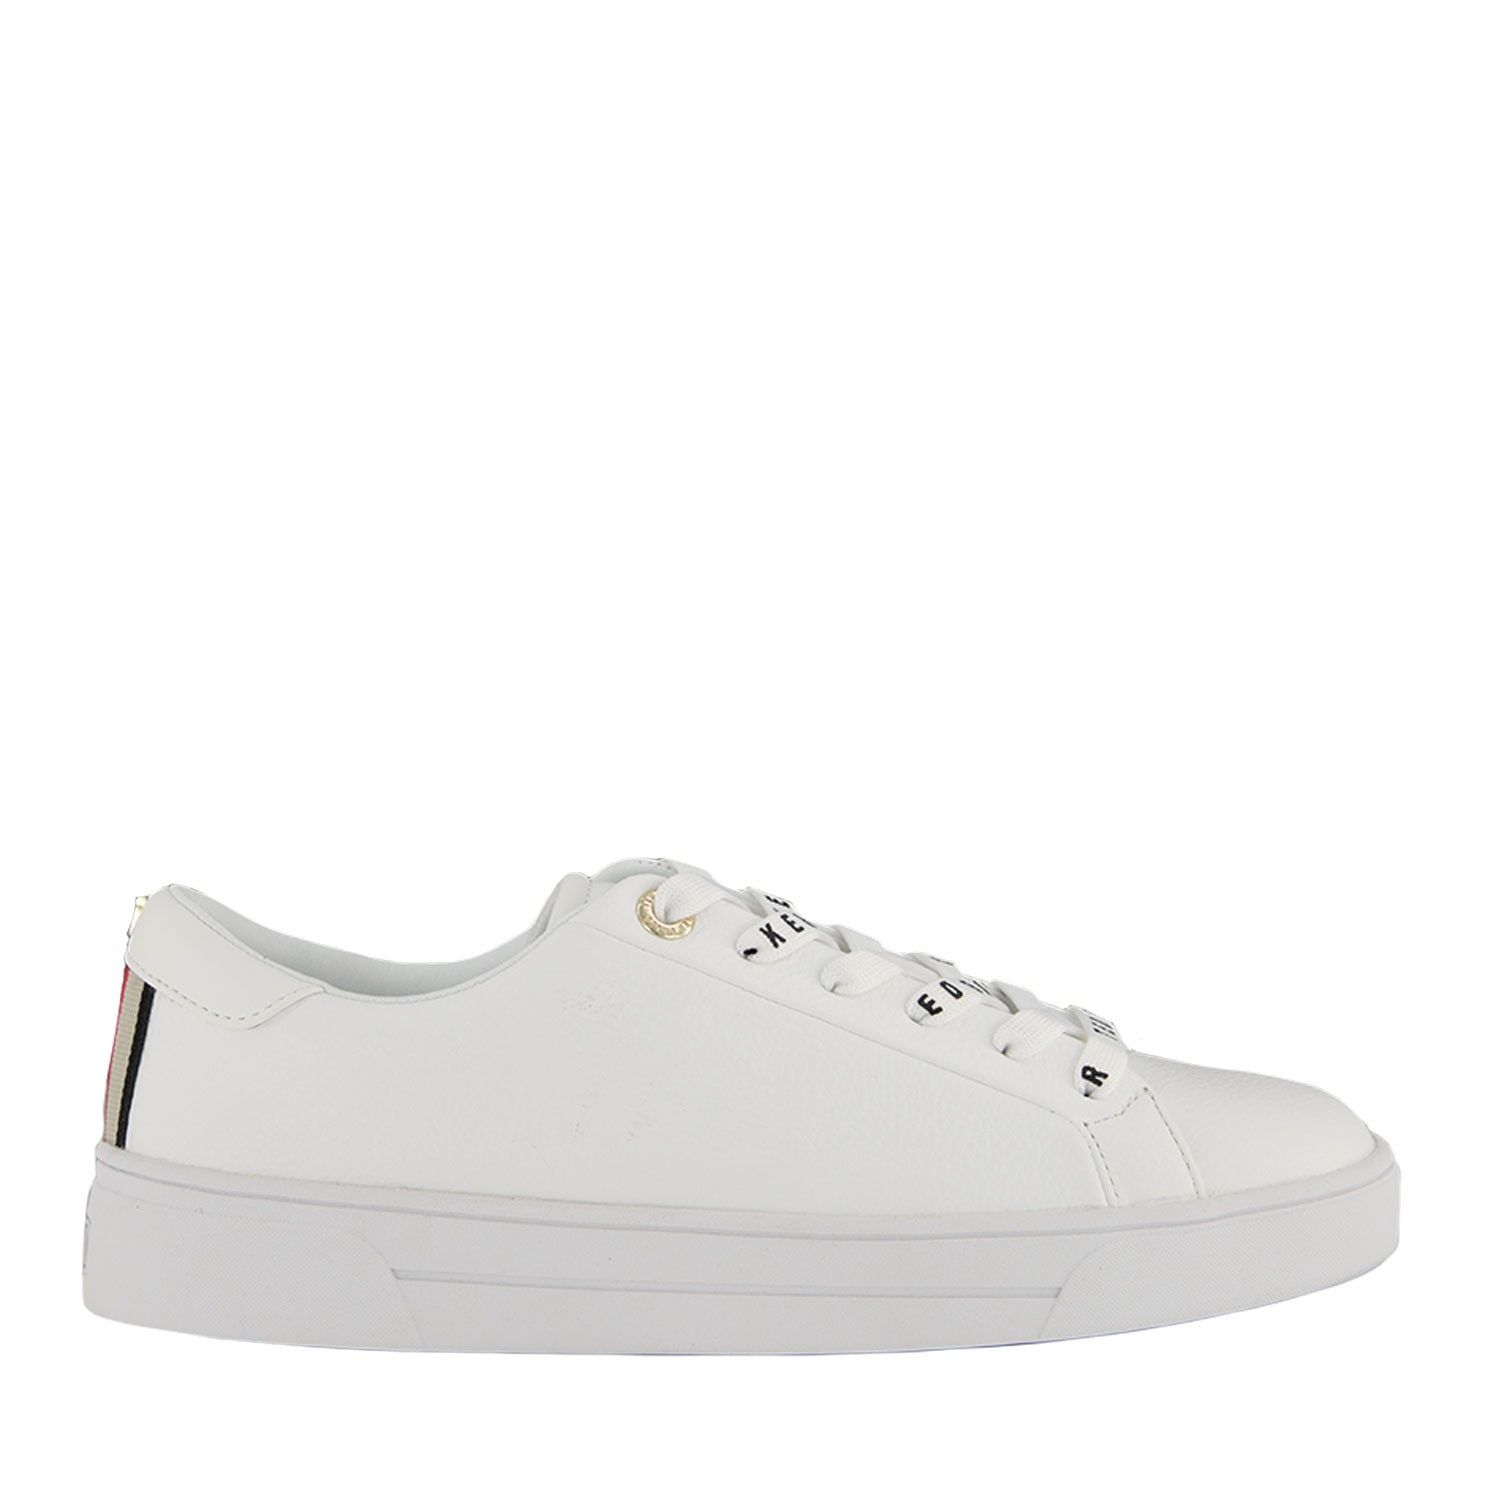 Picture of Ted Baker 242193 womens sneakers white